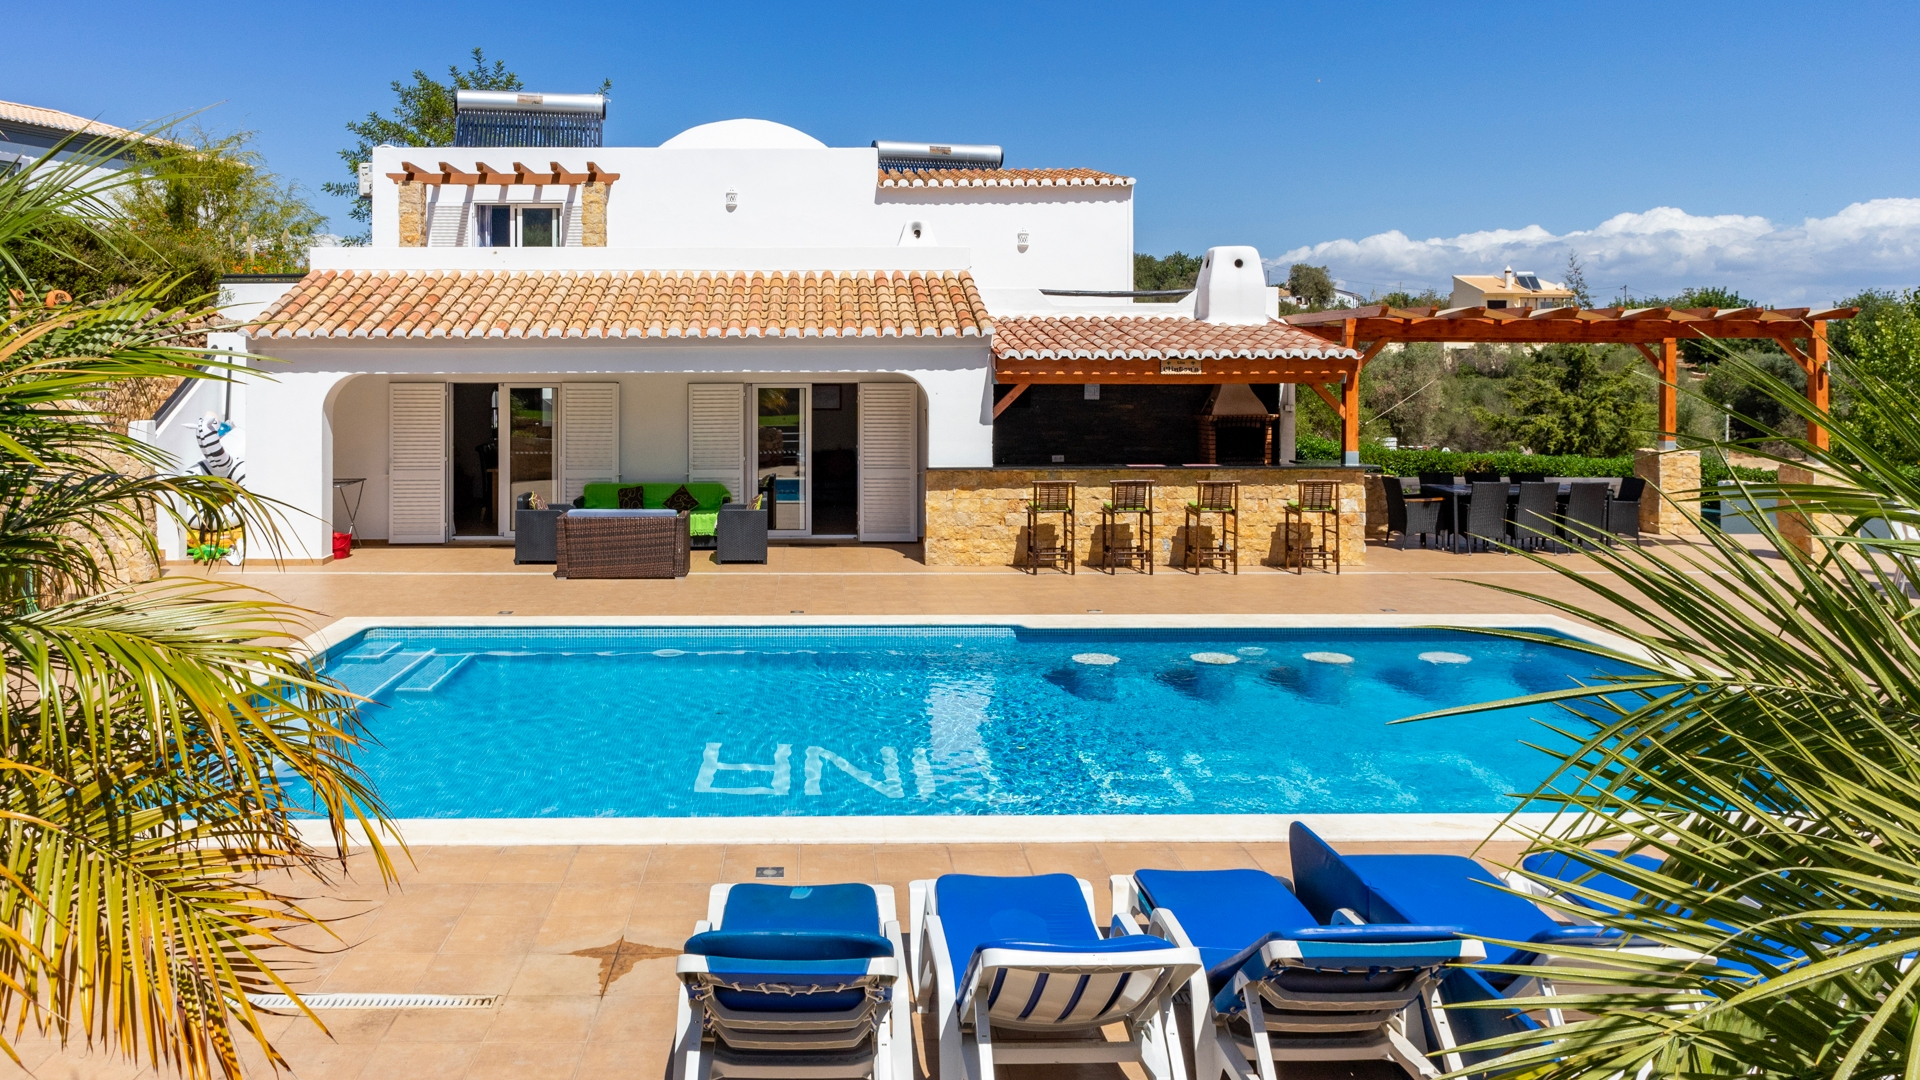 Renovated 4 Bedroom Villa with Heated Pool in Popular Resort, Albufeira | VM1537 This newly renovated villa is set in the popular resort of Clube Albufeira with beaches, restaurants, supermarkets and all amenities in walking distance. An ideal holiday rental property.